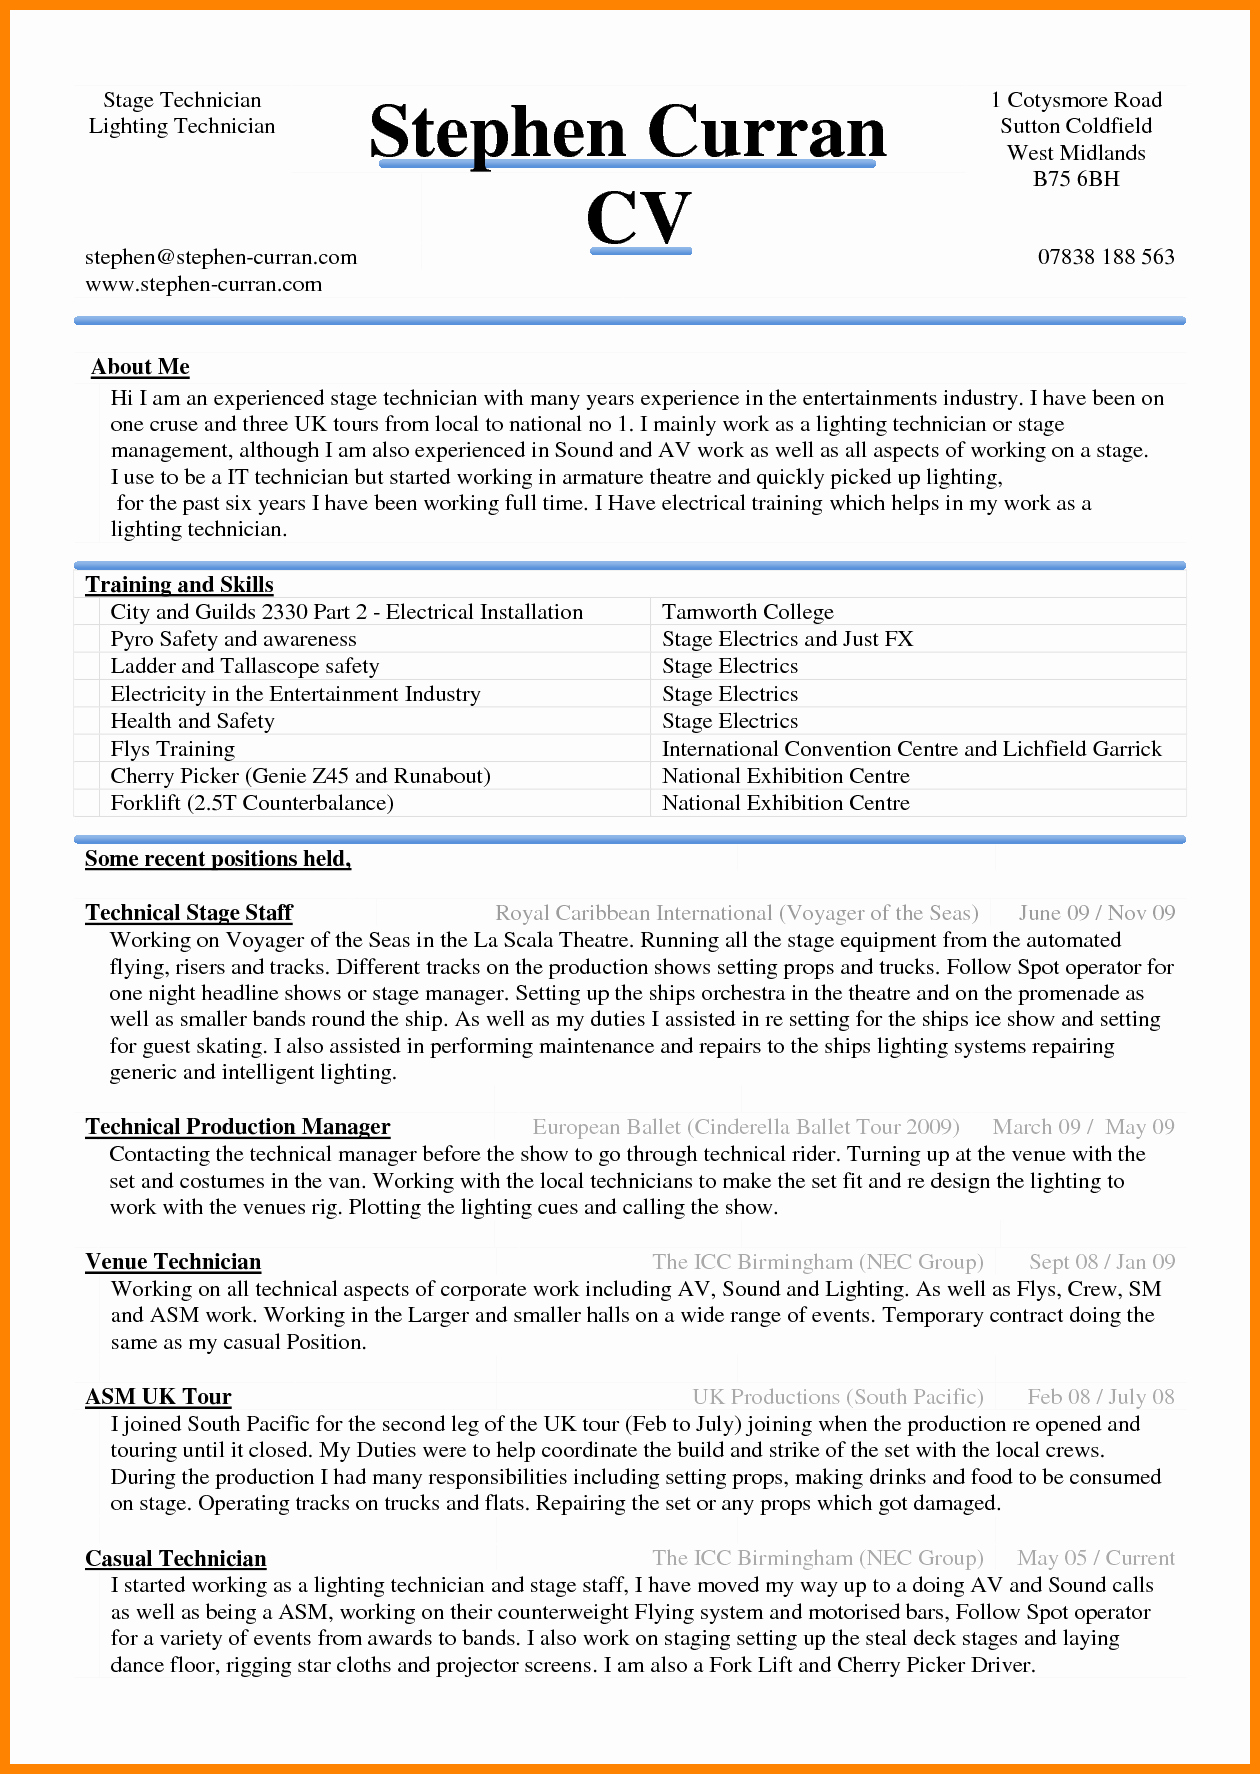 Curriculum Vitae Template Word Lovely 6 Curriculum Vitae In Ms Word